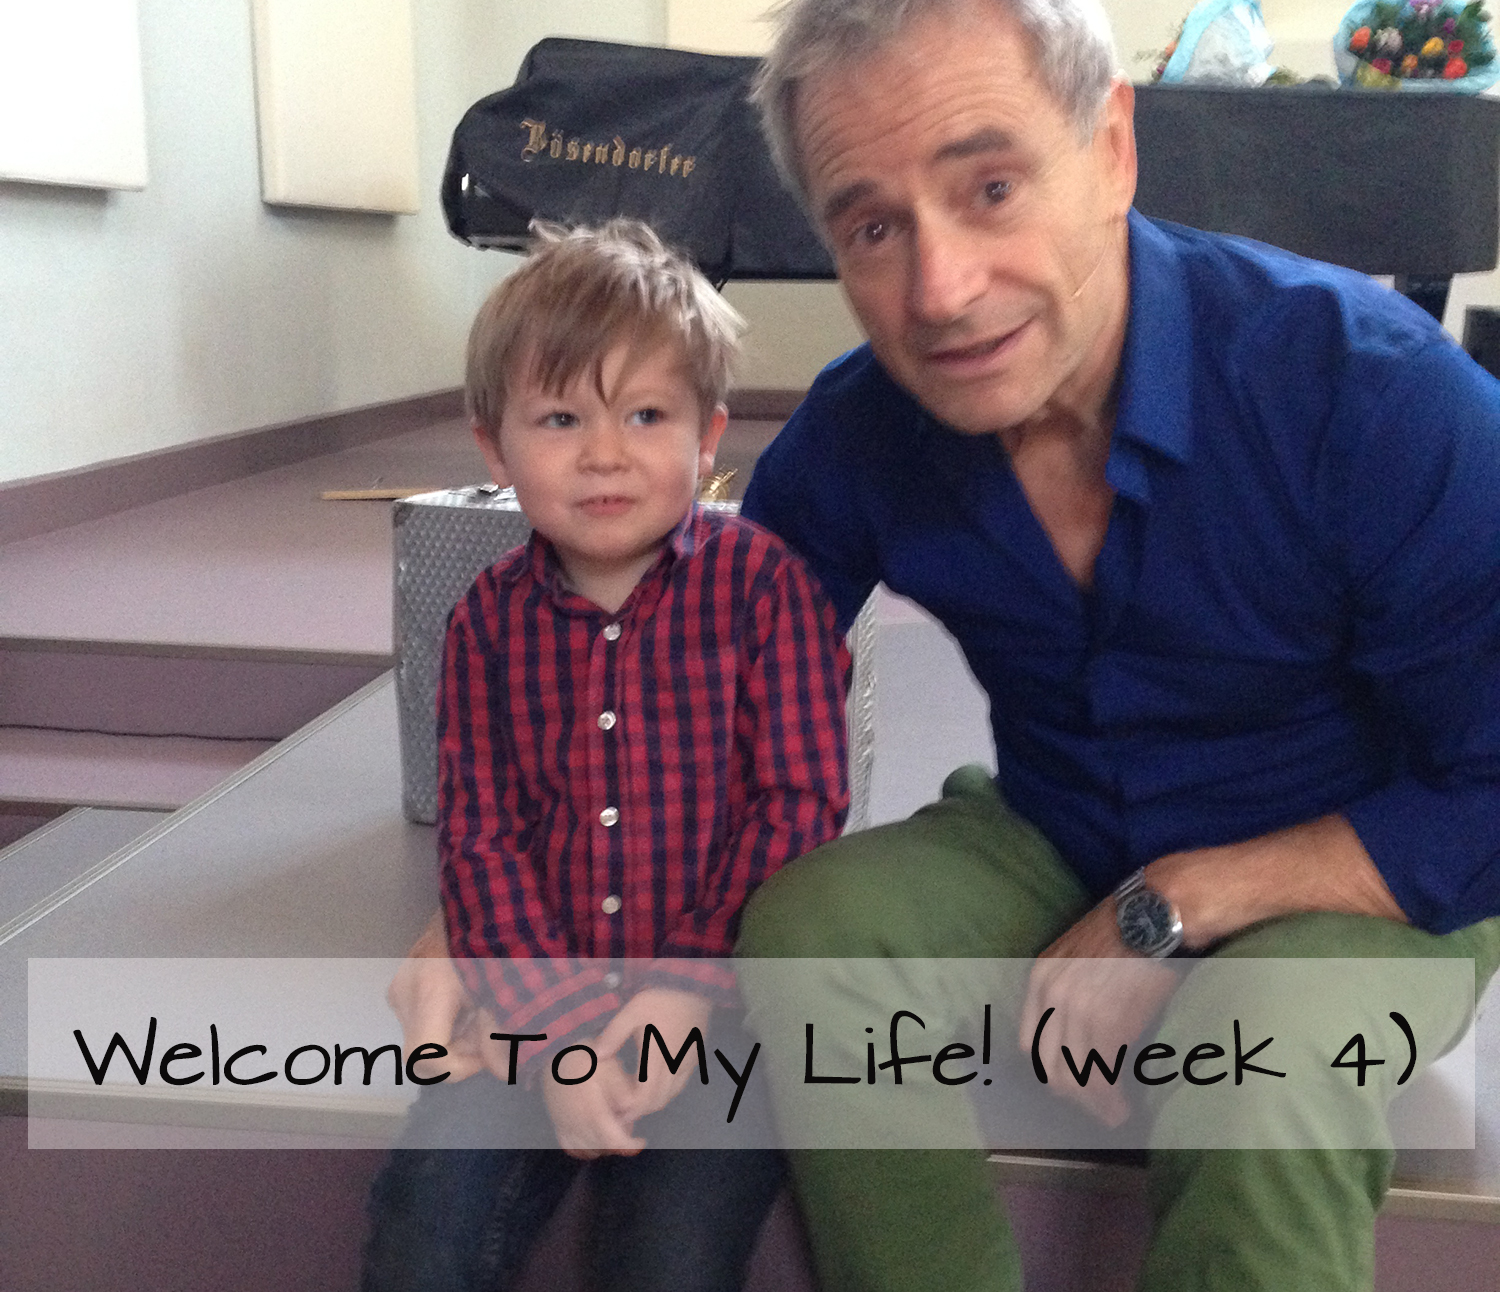 Persoonlijk: Welcome To My Life! (week 4)